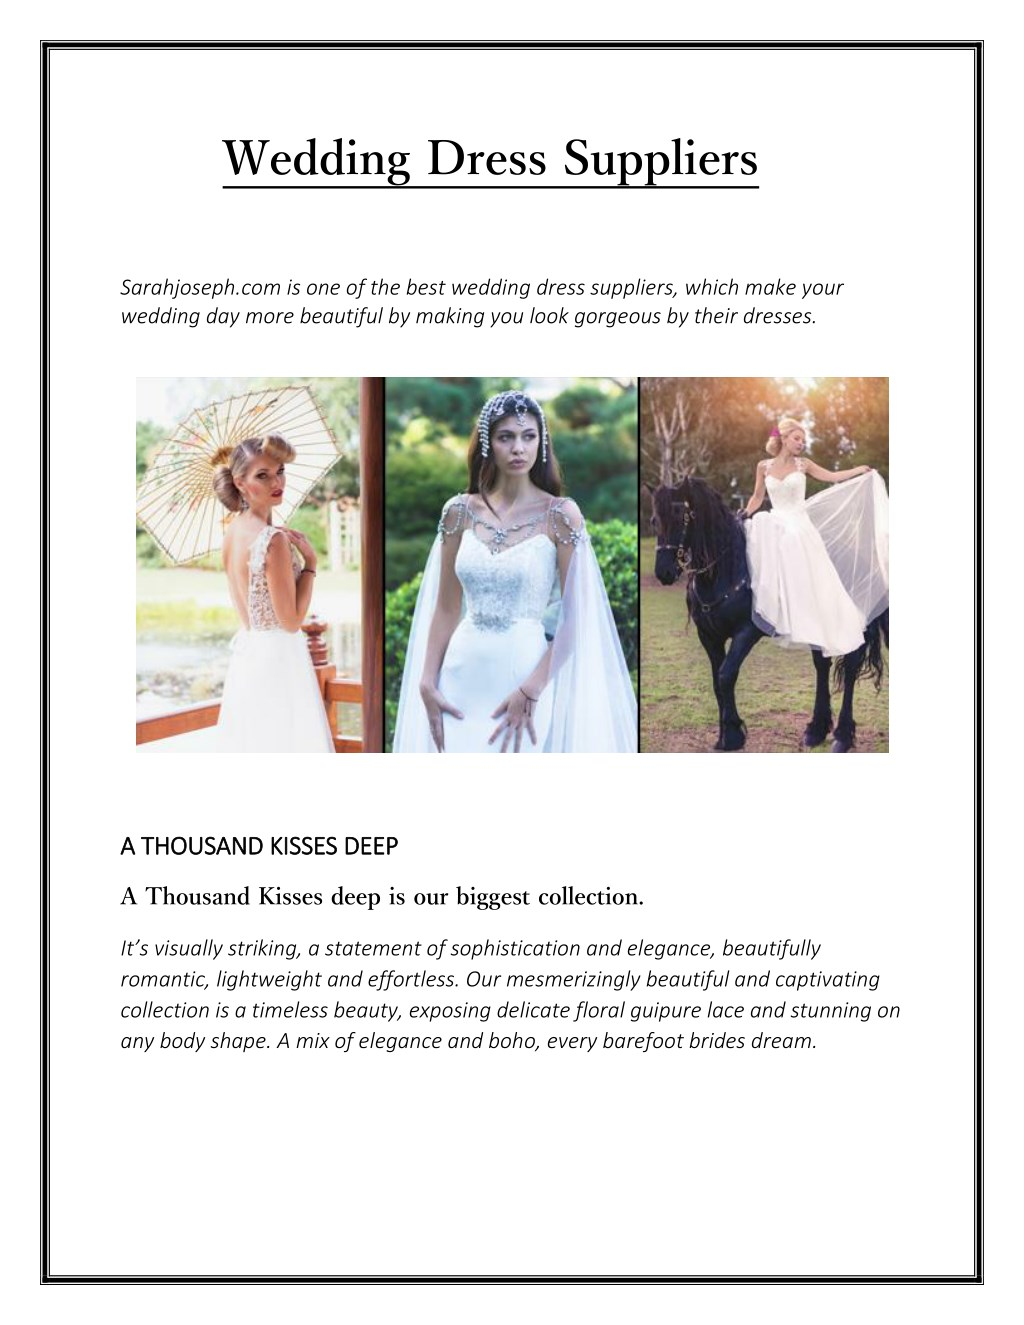 Ppt Wedding Dress Suppliers Sarahjoseph Powerpoint Presentation Free Download Id 7617983,Casual Fall Dresses To Wear To A Wedding